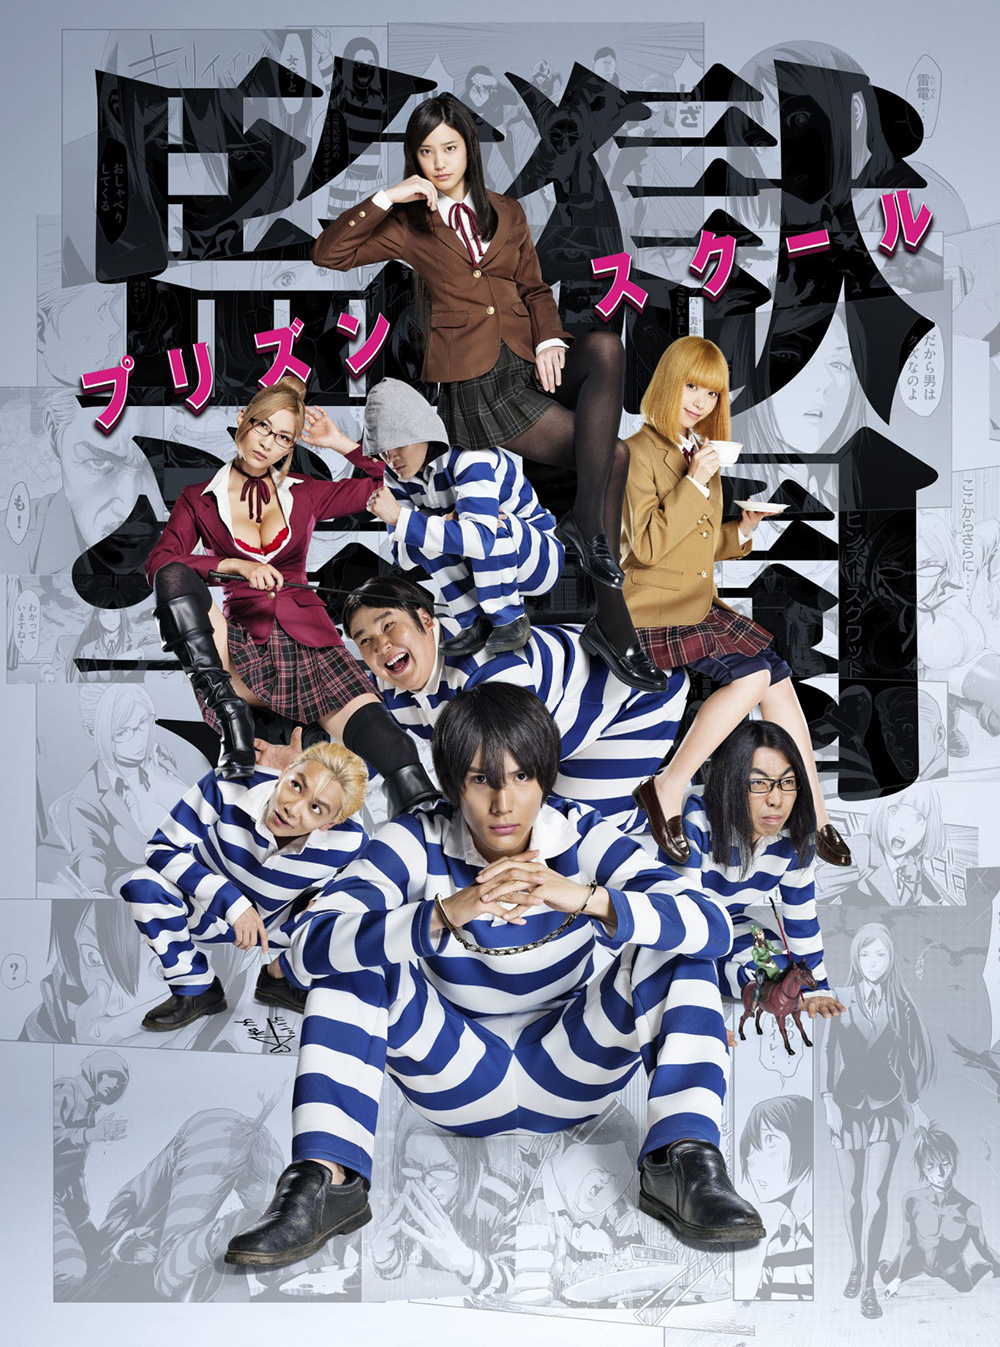 New Visual & Cast for Live-Action Prison School Drama Revealed